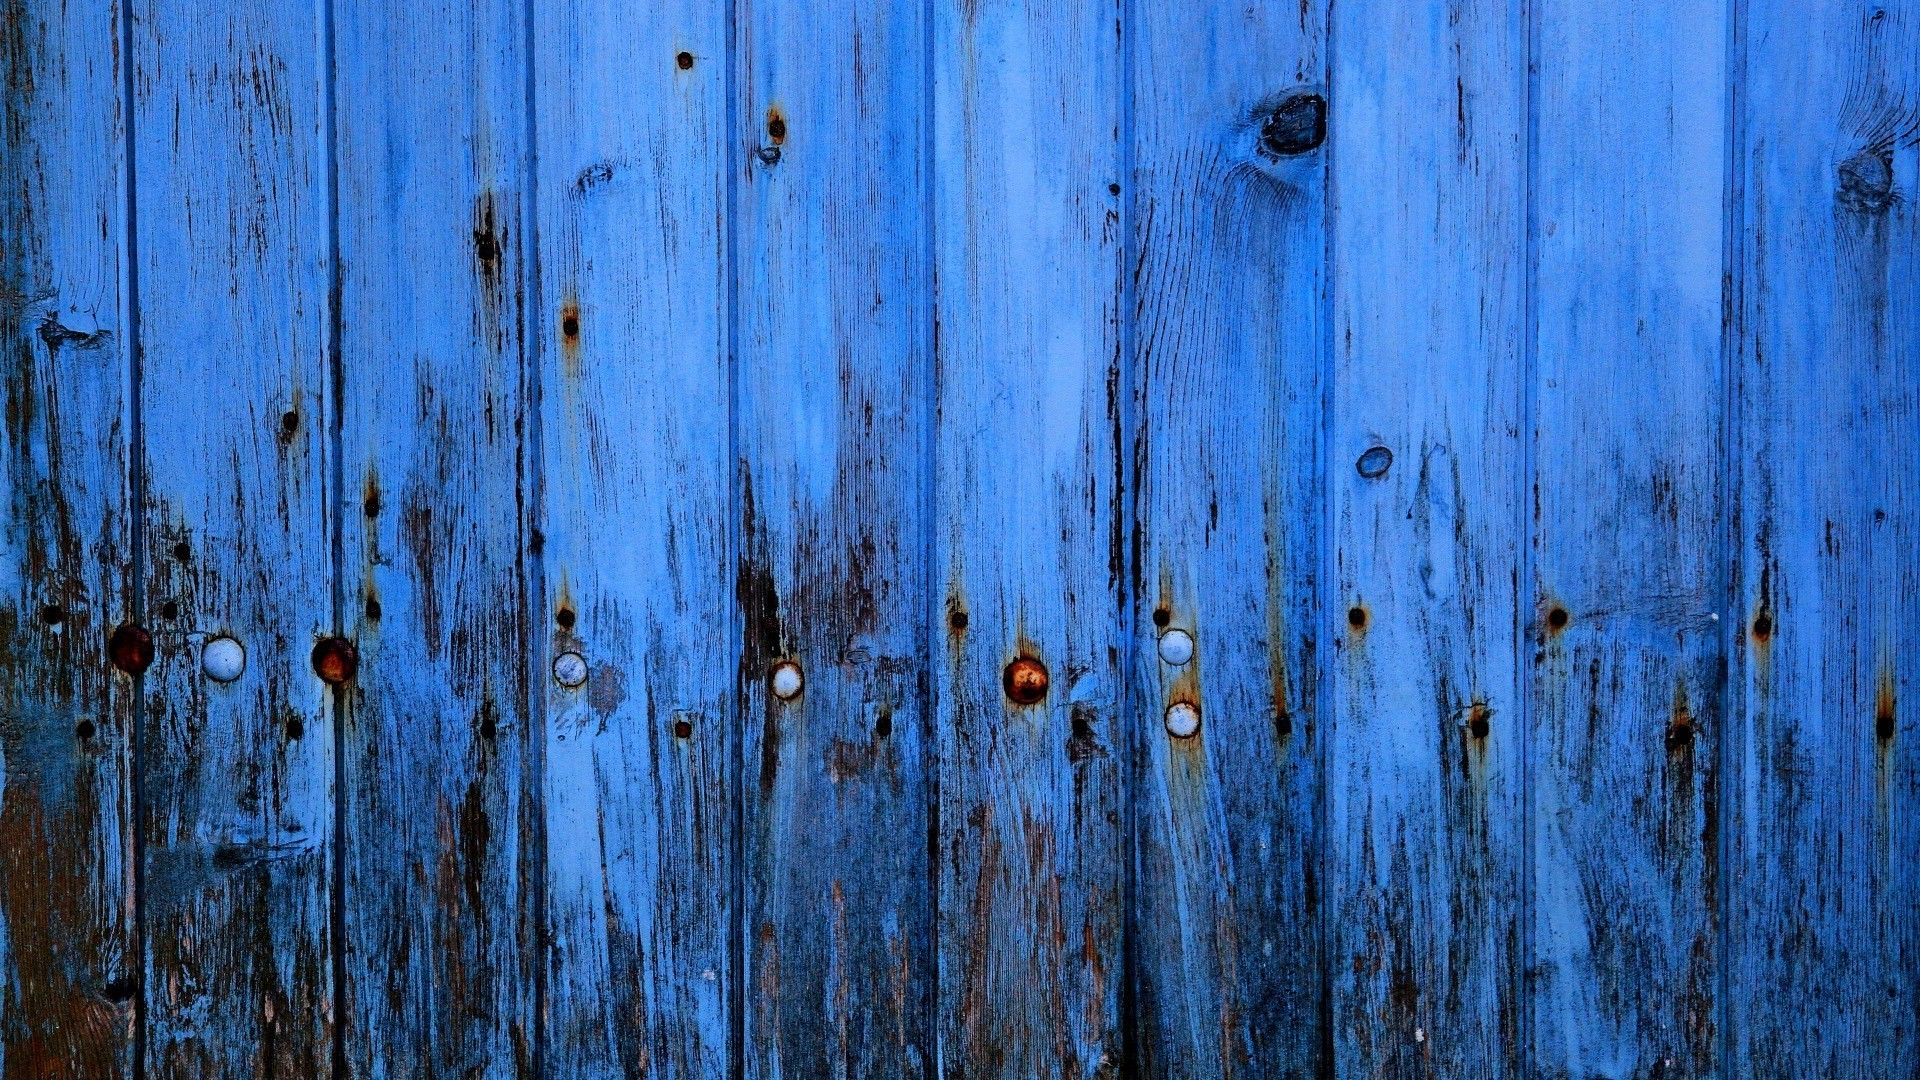 Blue Wood iPad Wallpaper HD | iPad Wallpaper Ideas | Pinterest .